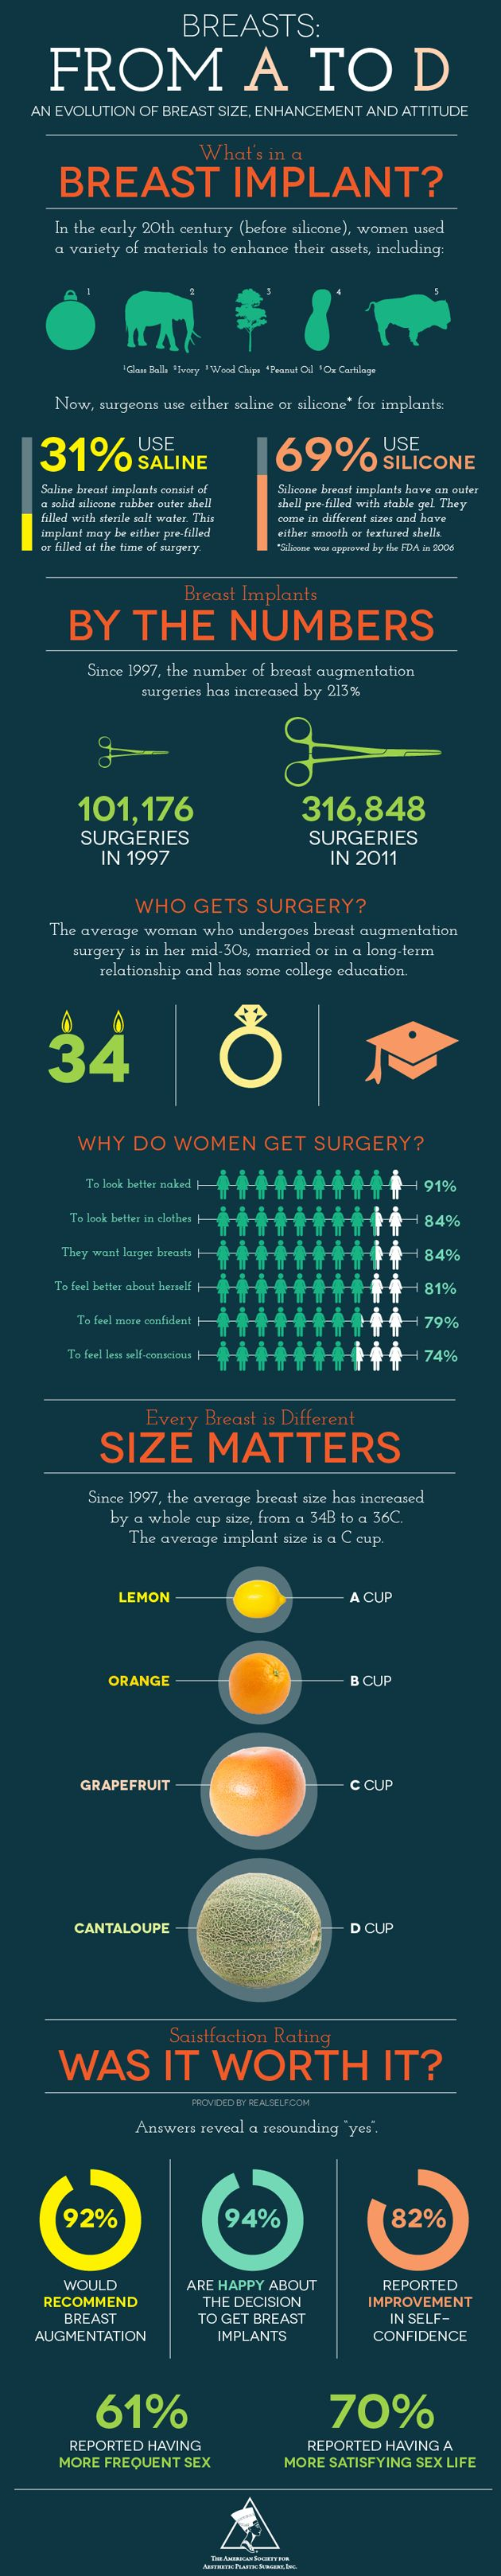 Breasts: From A to D [INFOGRAPHIC] History of Breast Implants and so much more! http://www.drwigoda.com/procedures/breast-augmentation/ #painlessbreastimplants #plasticsurgery #inforgraphic